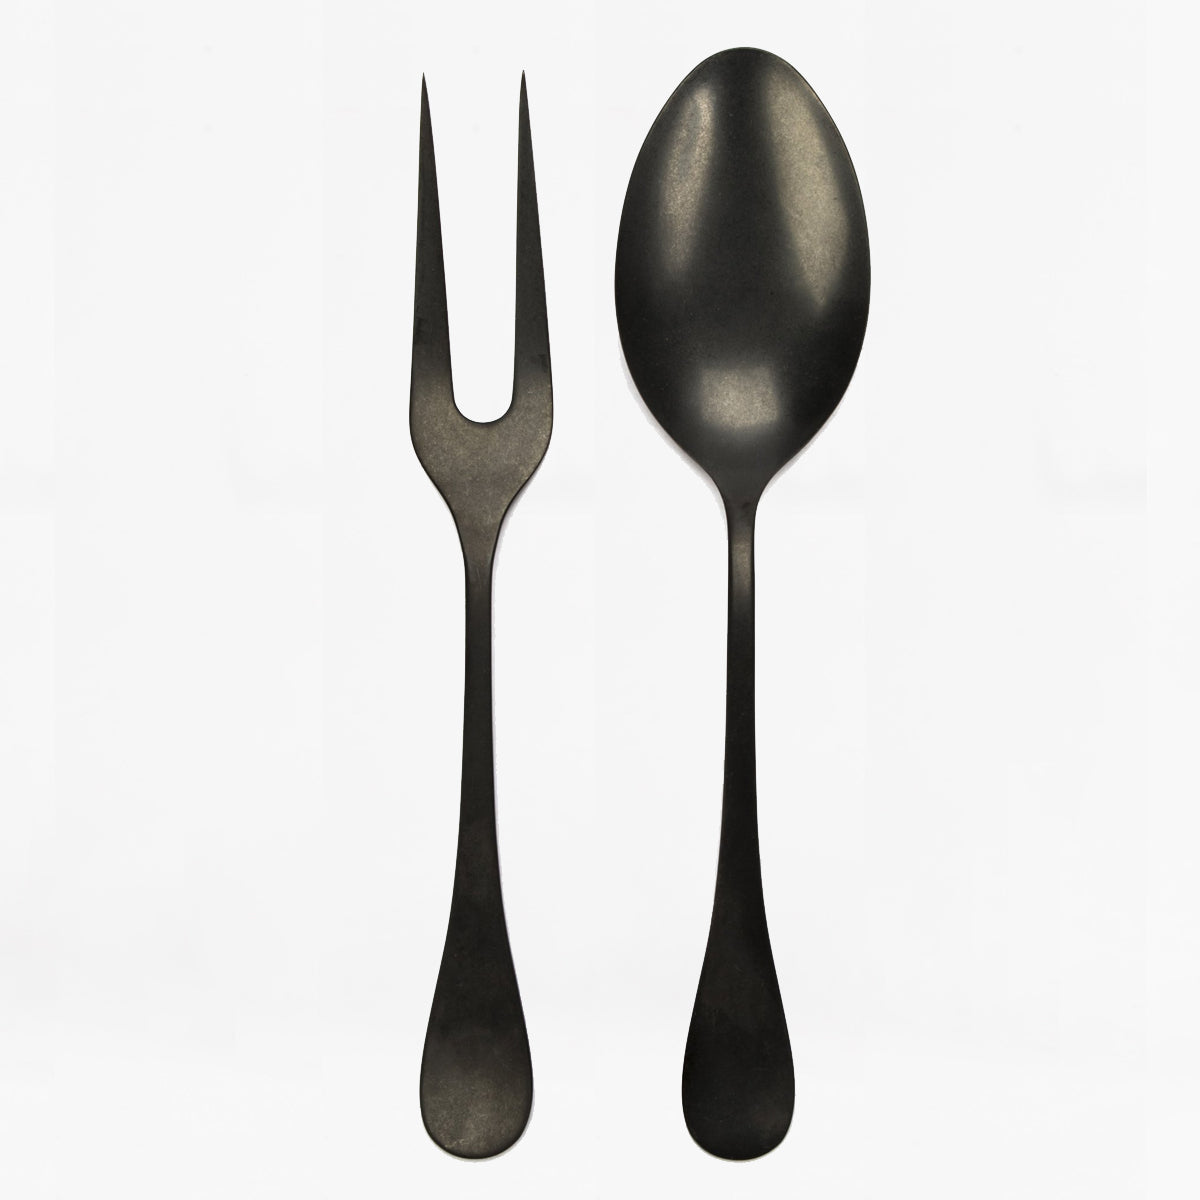 hudson serving set, 2 pc, stonewash black